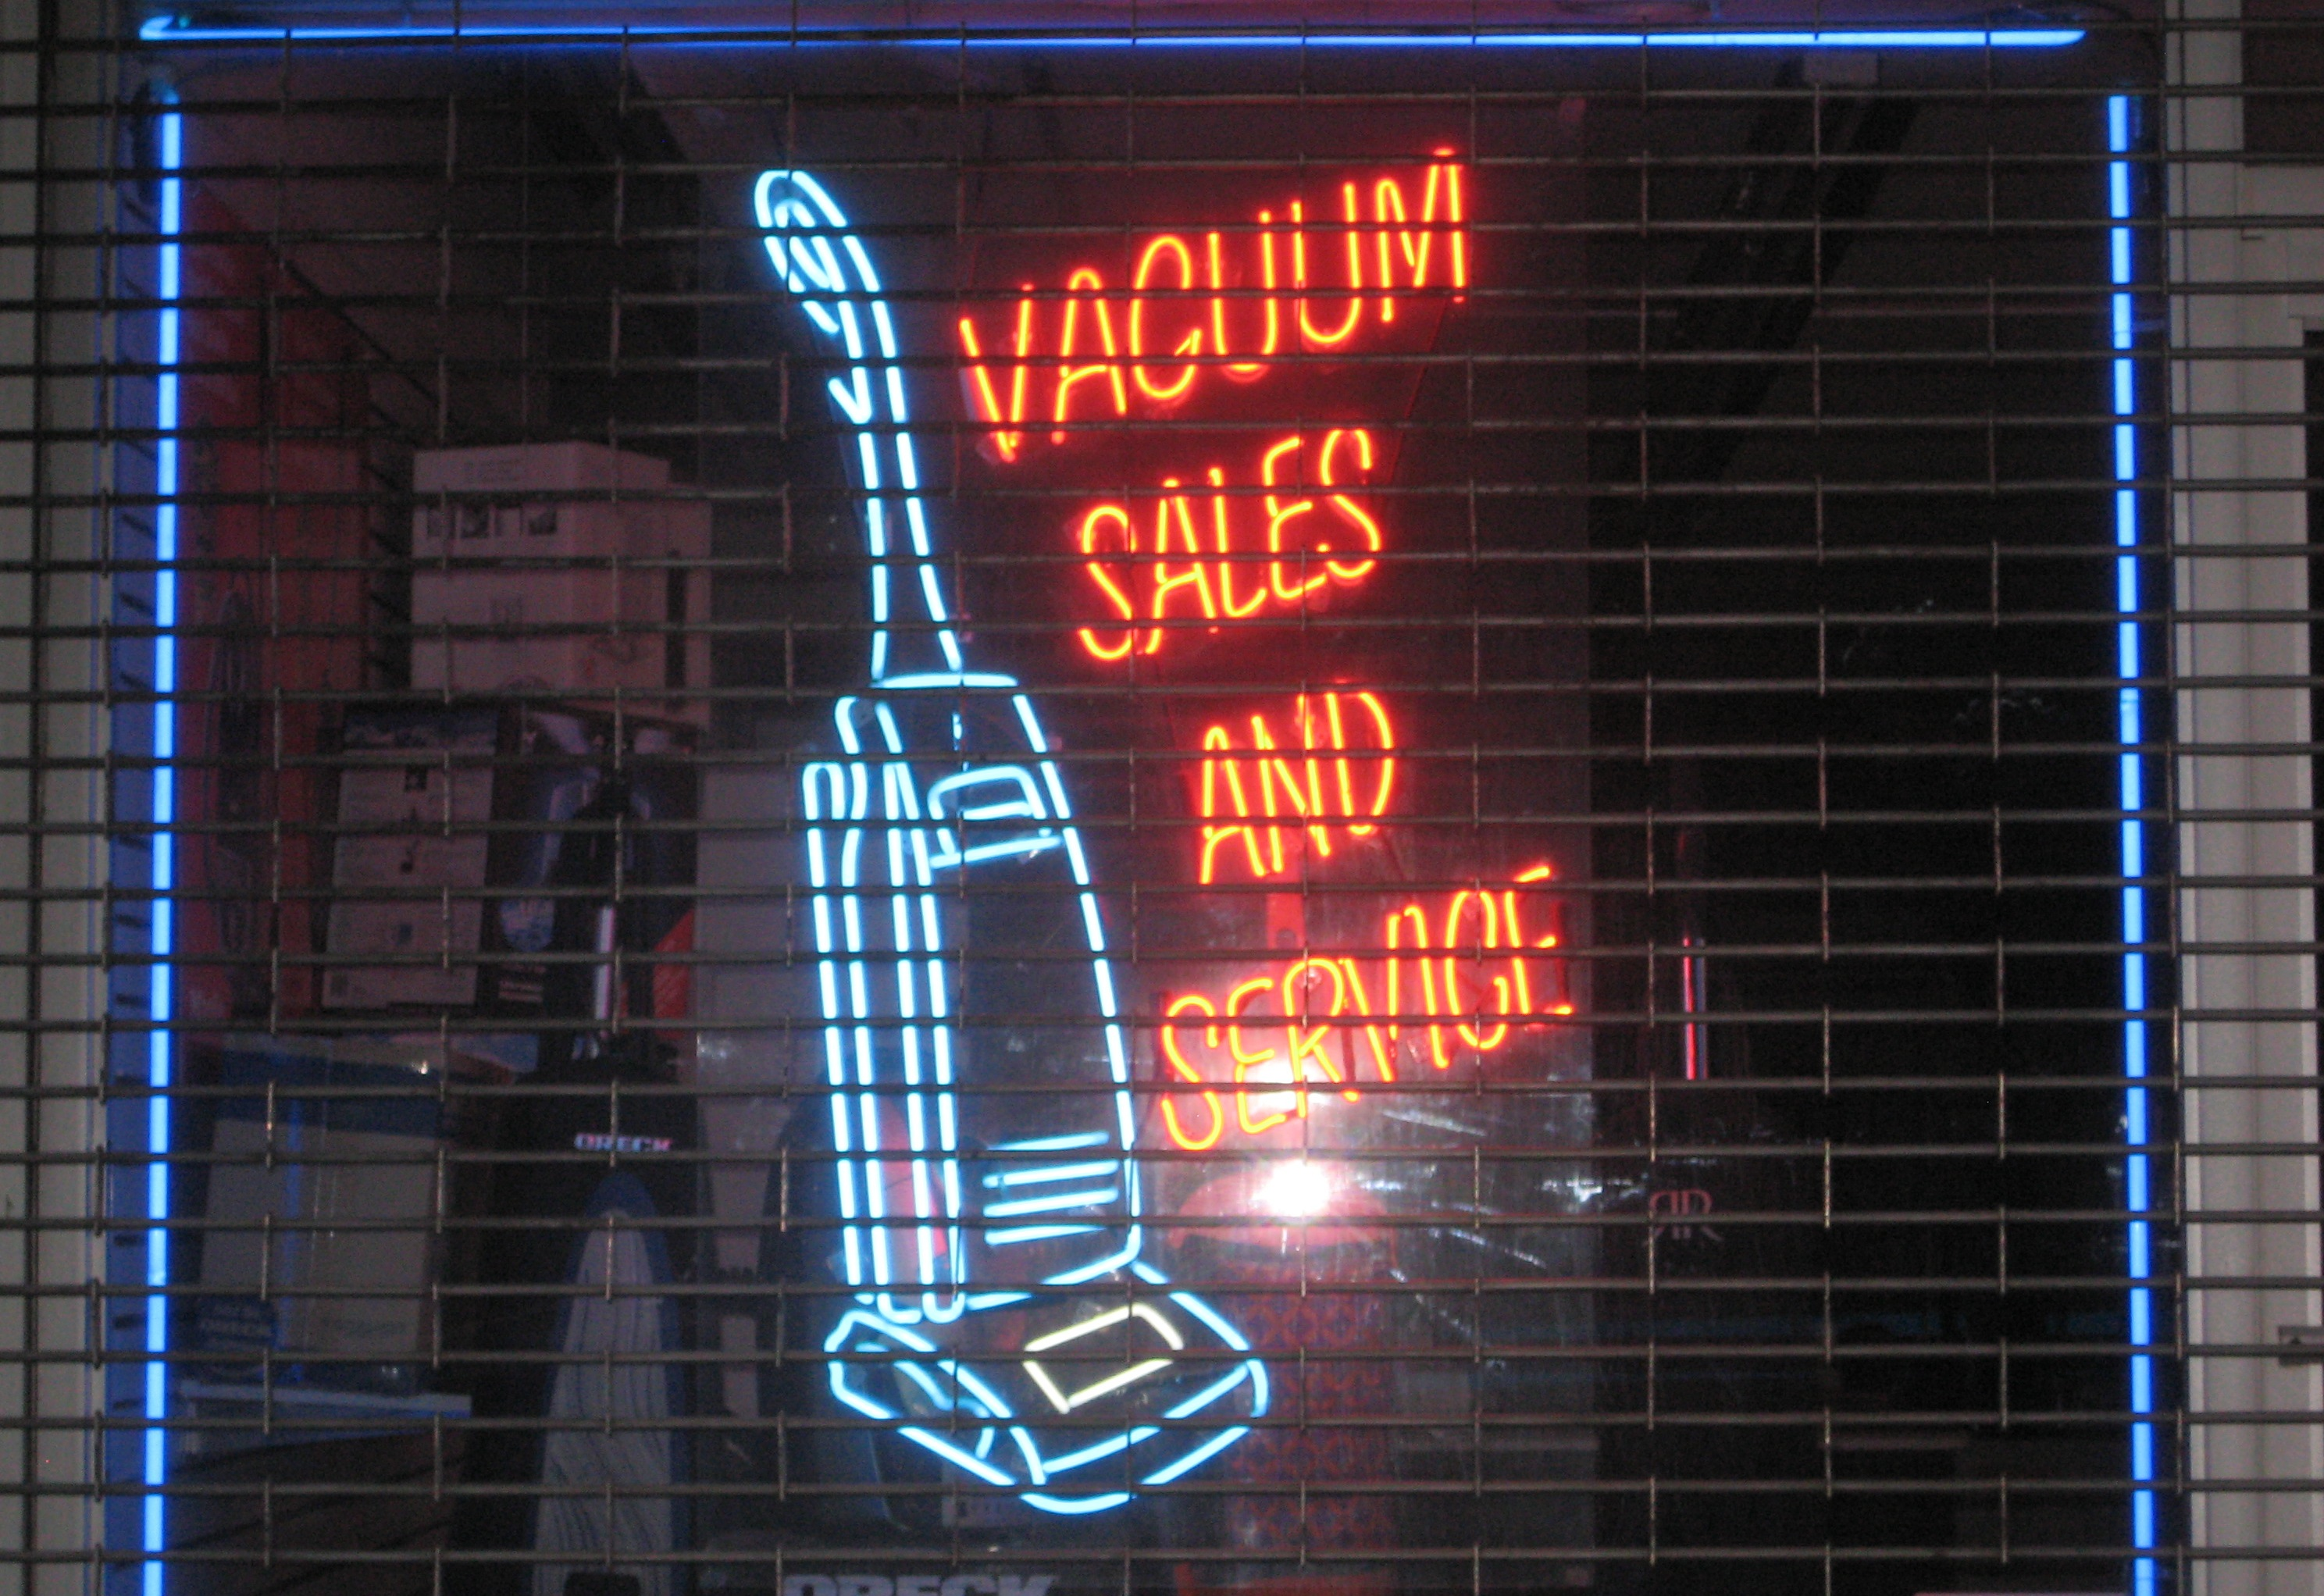 Desco Vacuum 14th Street The Neon Signs That Light Up The